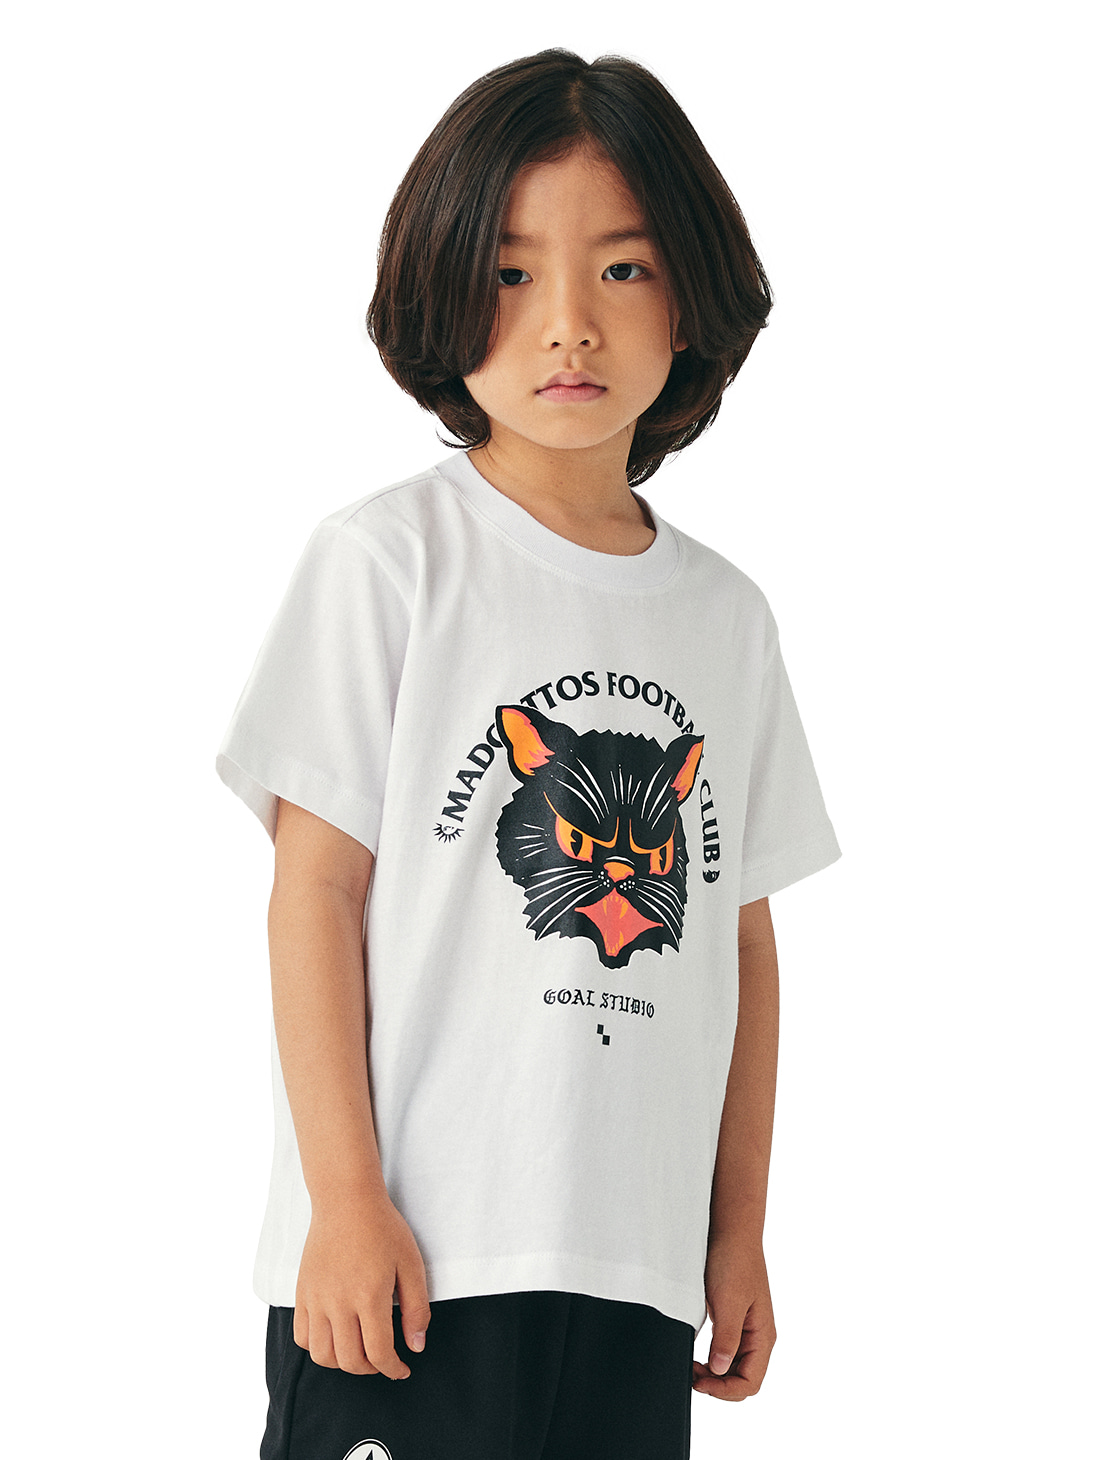 GOALSTUDIO (KIDS) MC FACE GRAPHIC TEE - WHITE